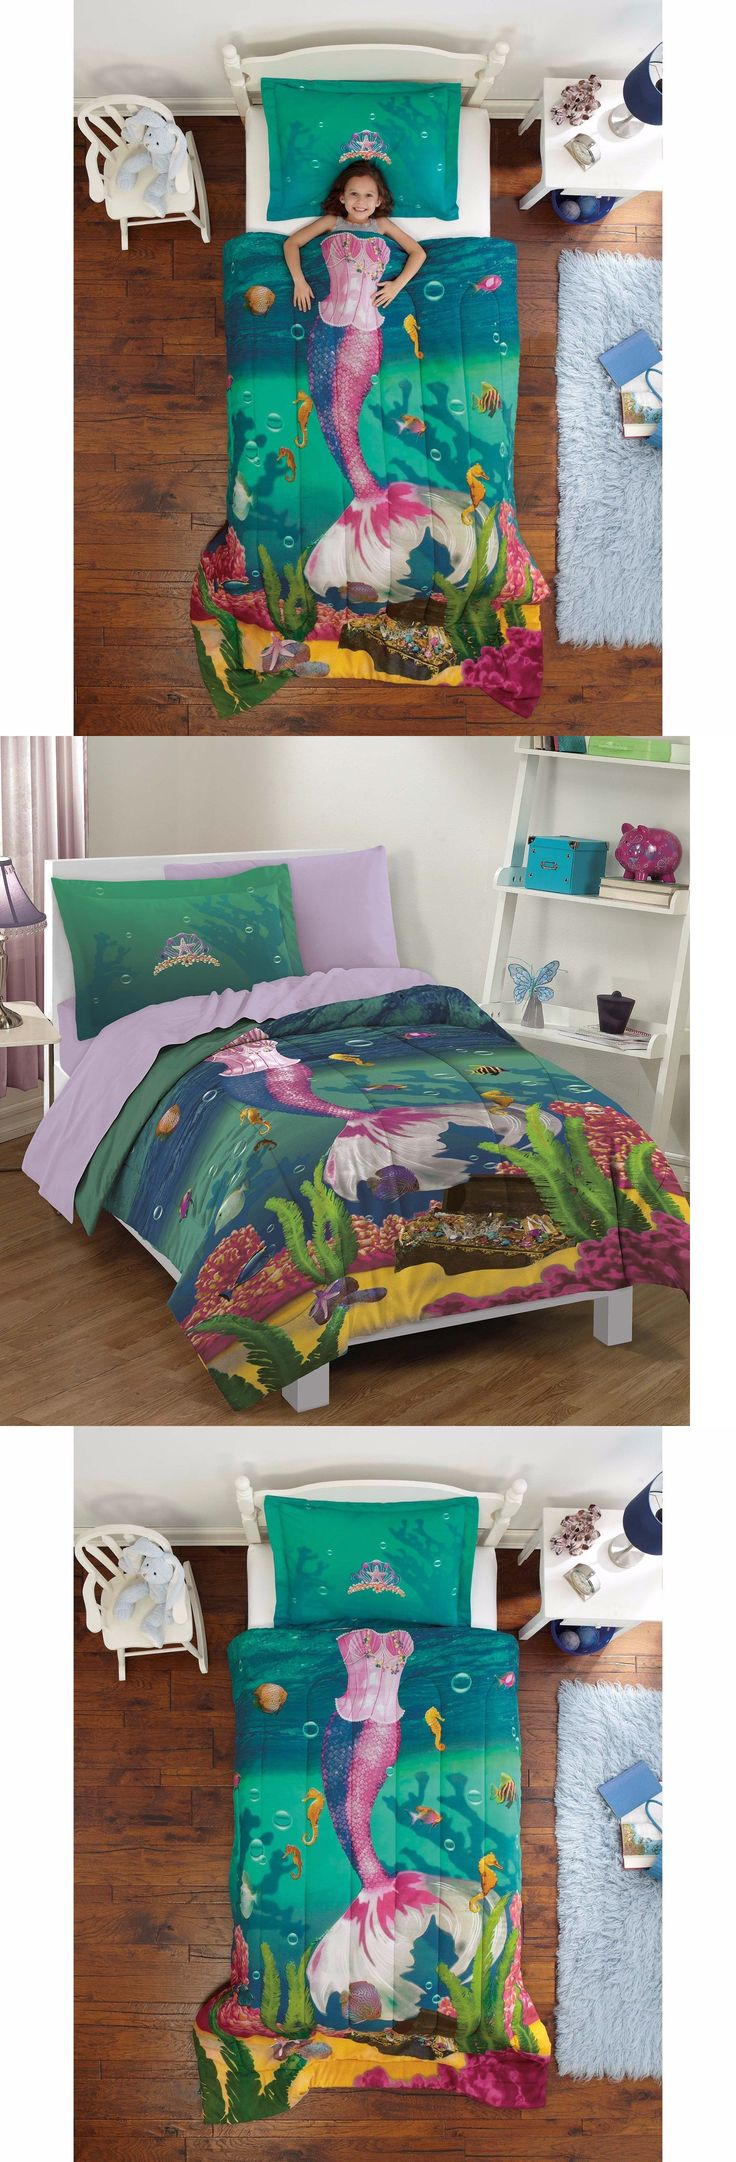 Kids at Home: Kids Comforter Set For Girls Twin Mermaid Sea Princess Ocean Bed Bedding Sham BUY IT NOW ONLY: $45.95